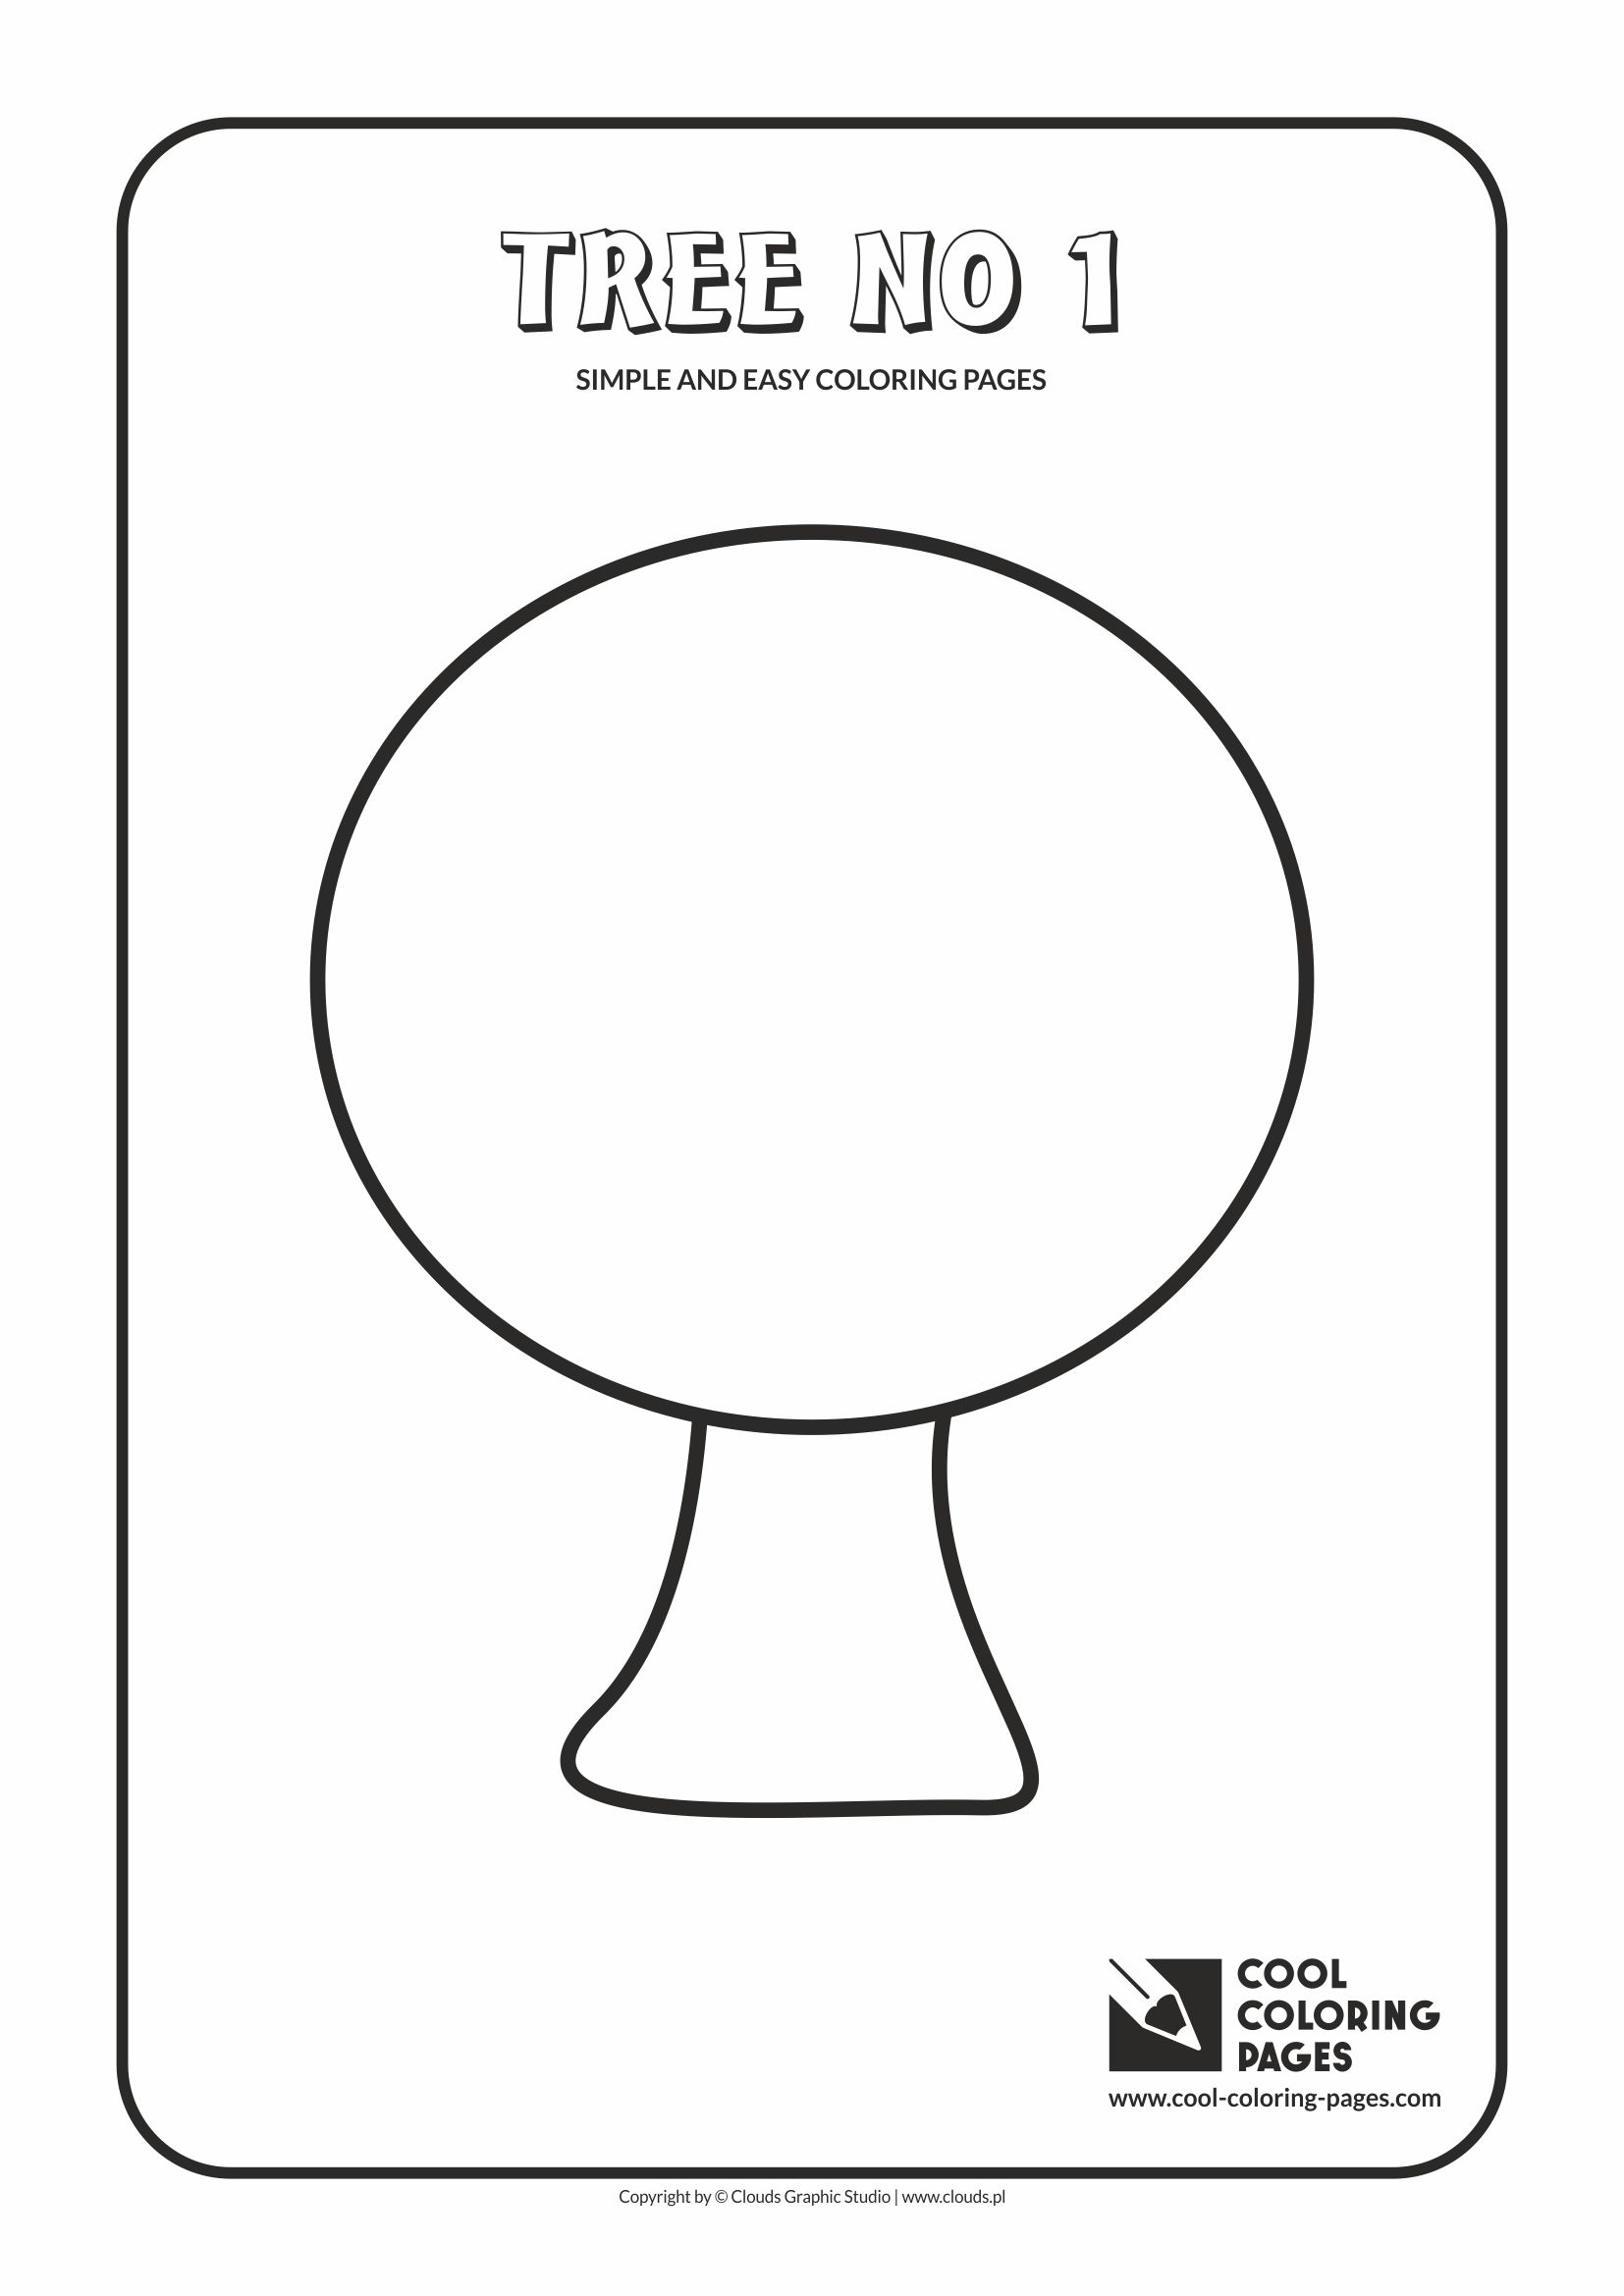 Simple and easy coloring pages for toddlers tree no 1